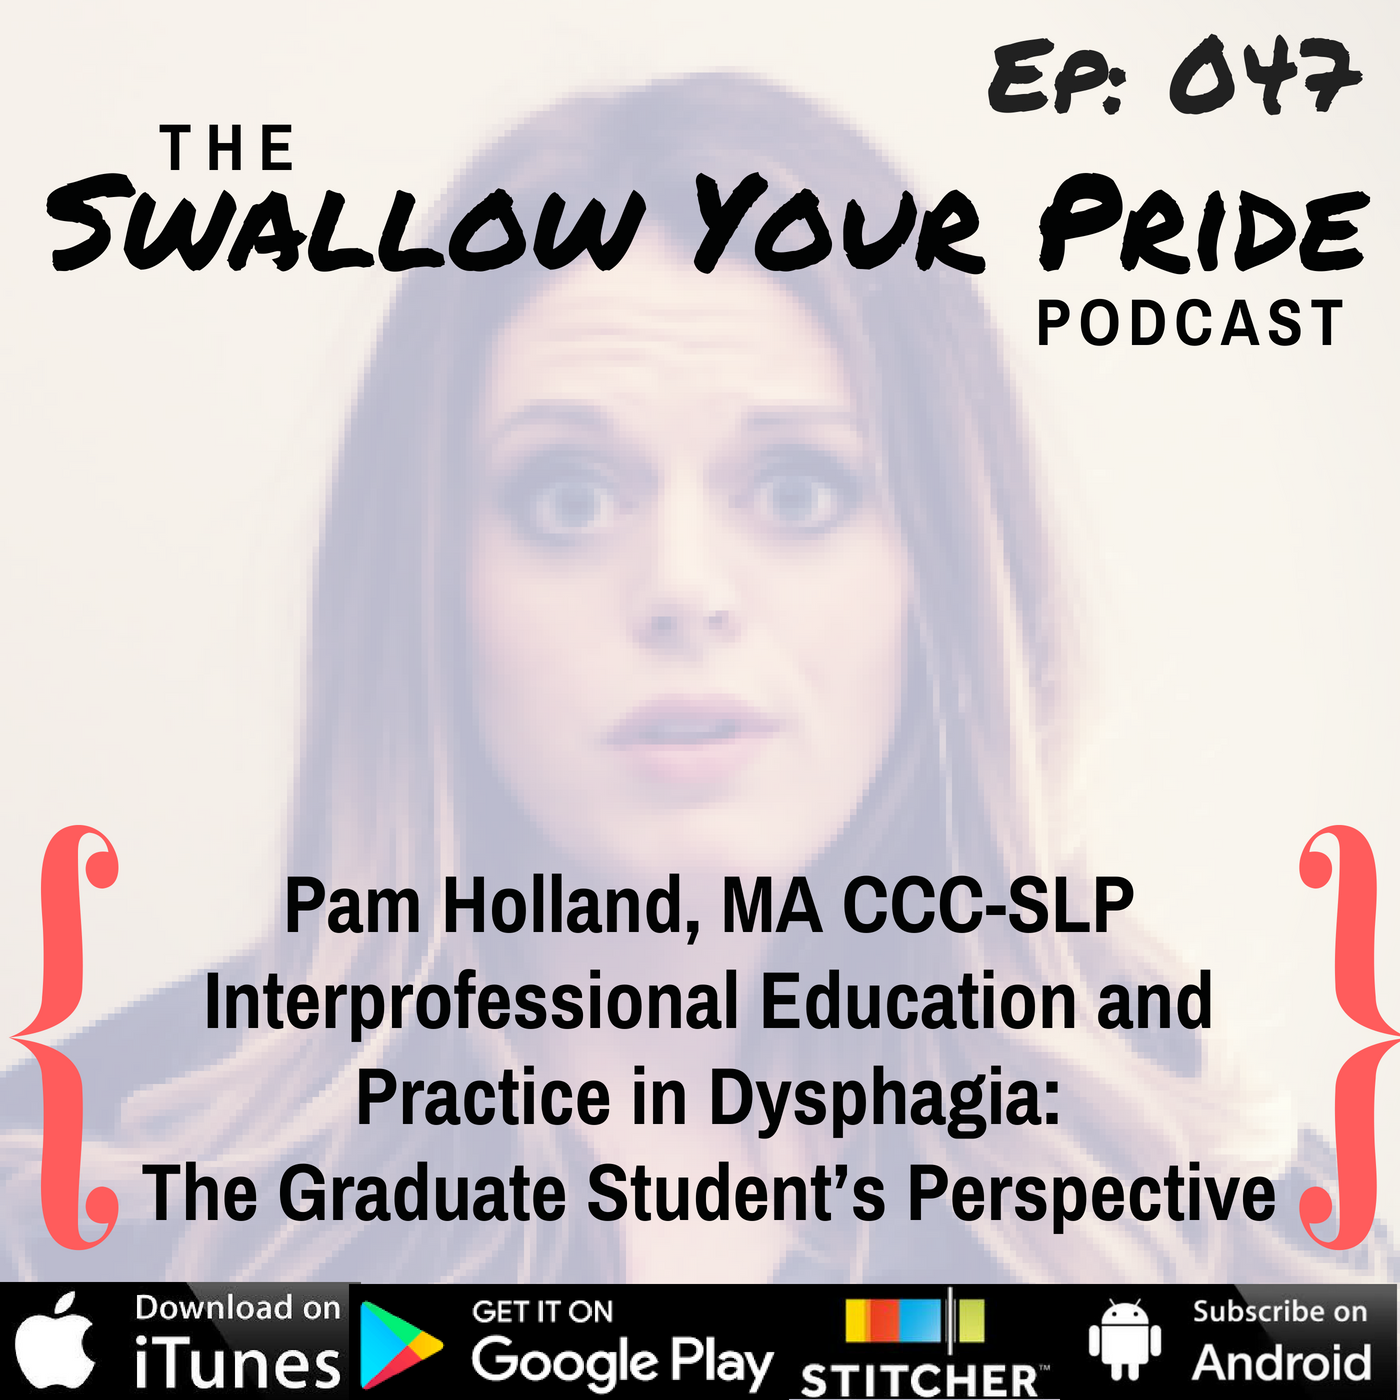 047 – Pam Holland, MA CCC-SLP –  Interprofessional Education and Practice in Dysphagia:  The Graduate Student's Perspective